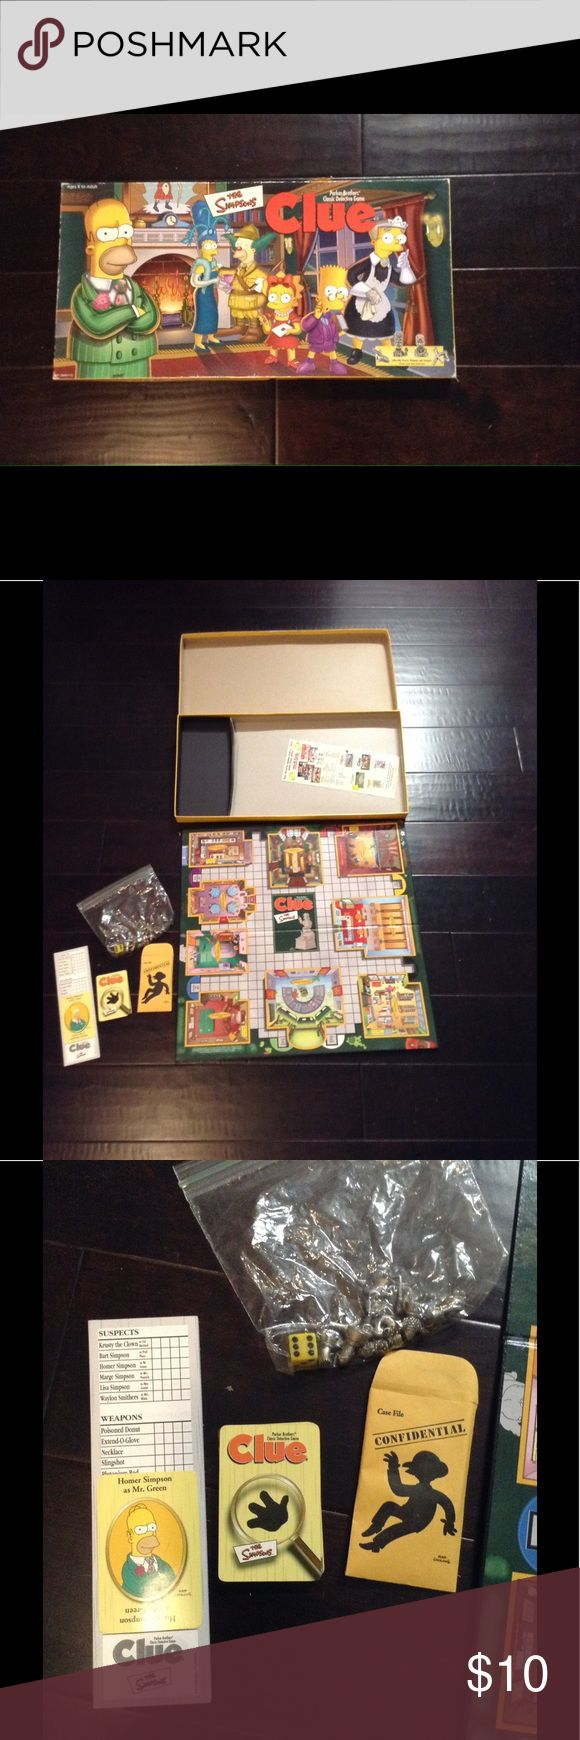 The Simpsons Clue Board Game 2000 Complete Complete and intact.  There is wear to box as evidenced in photos but game is complete and intact and in excellent shape for its age. From a smoke-free home. All offers considered. Parker Bros Other